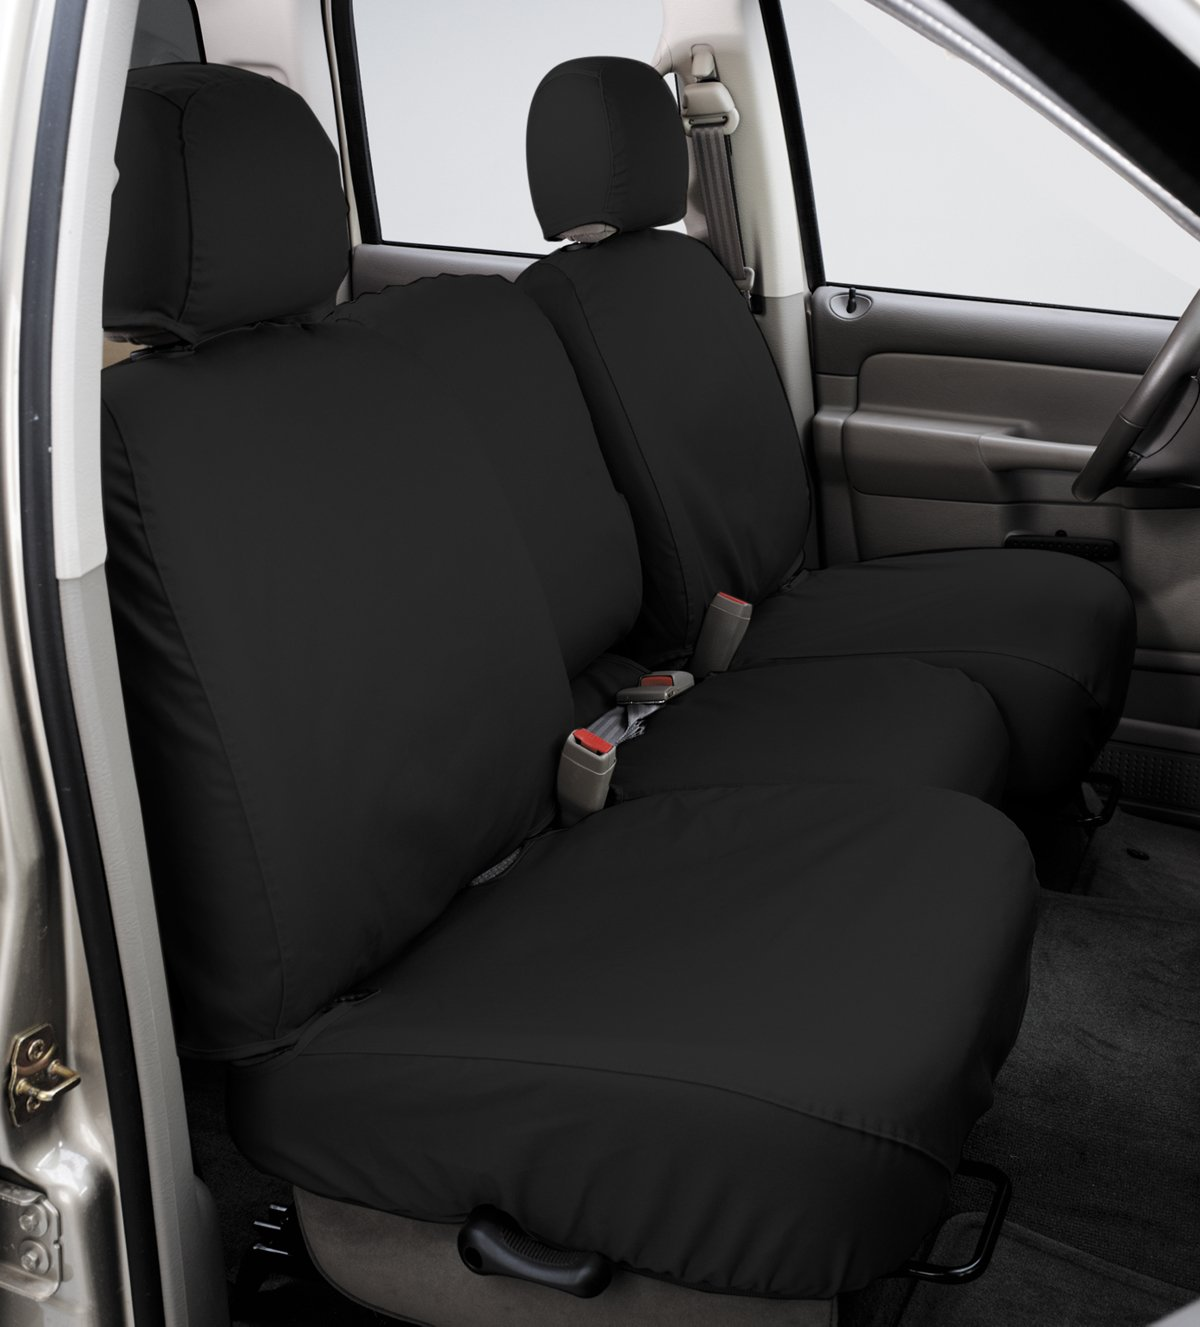 Charcoal SS8394PCCH Covercraft SeatSaver Second Row Custom Fit Seat Cover for Select Ford F-250 Super Duty//Ford F-350 Super Duty Models Polycotton